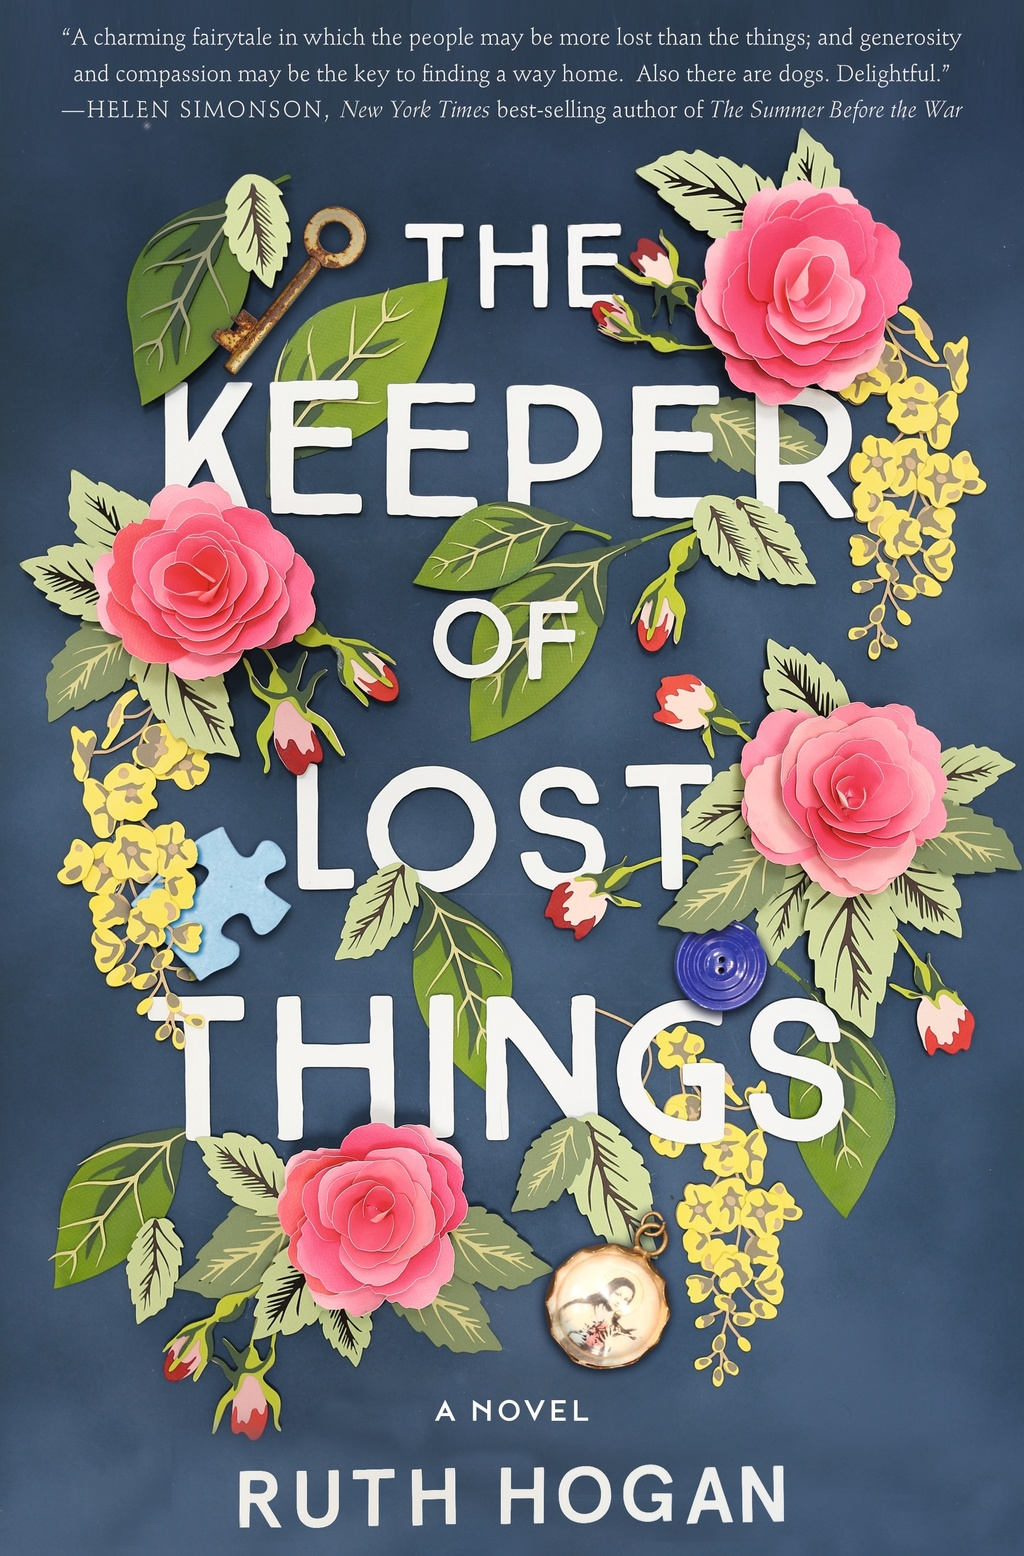 """This cover image released by William Morrow shows """"The Keeper of Lost Things,"""" a novel by Ruth Hogan. (William Morrow via AP)          ..."""